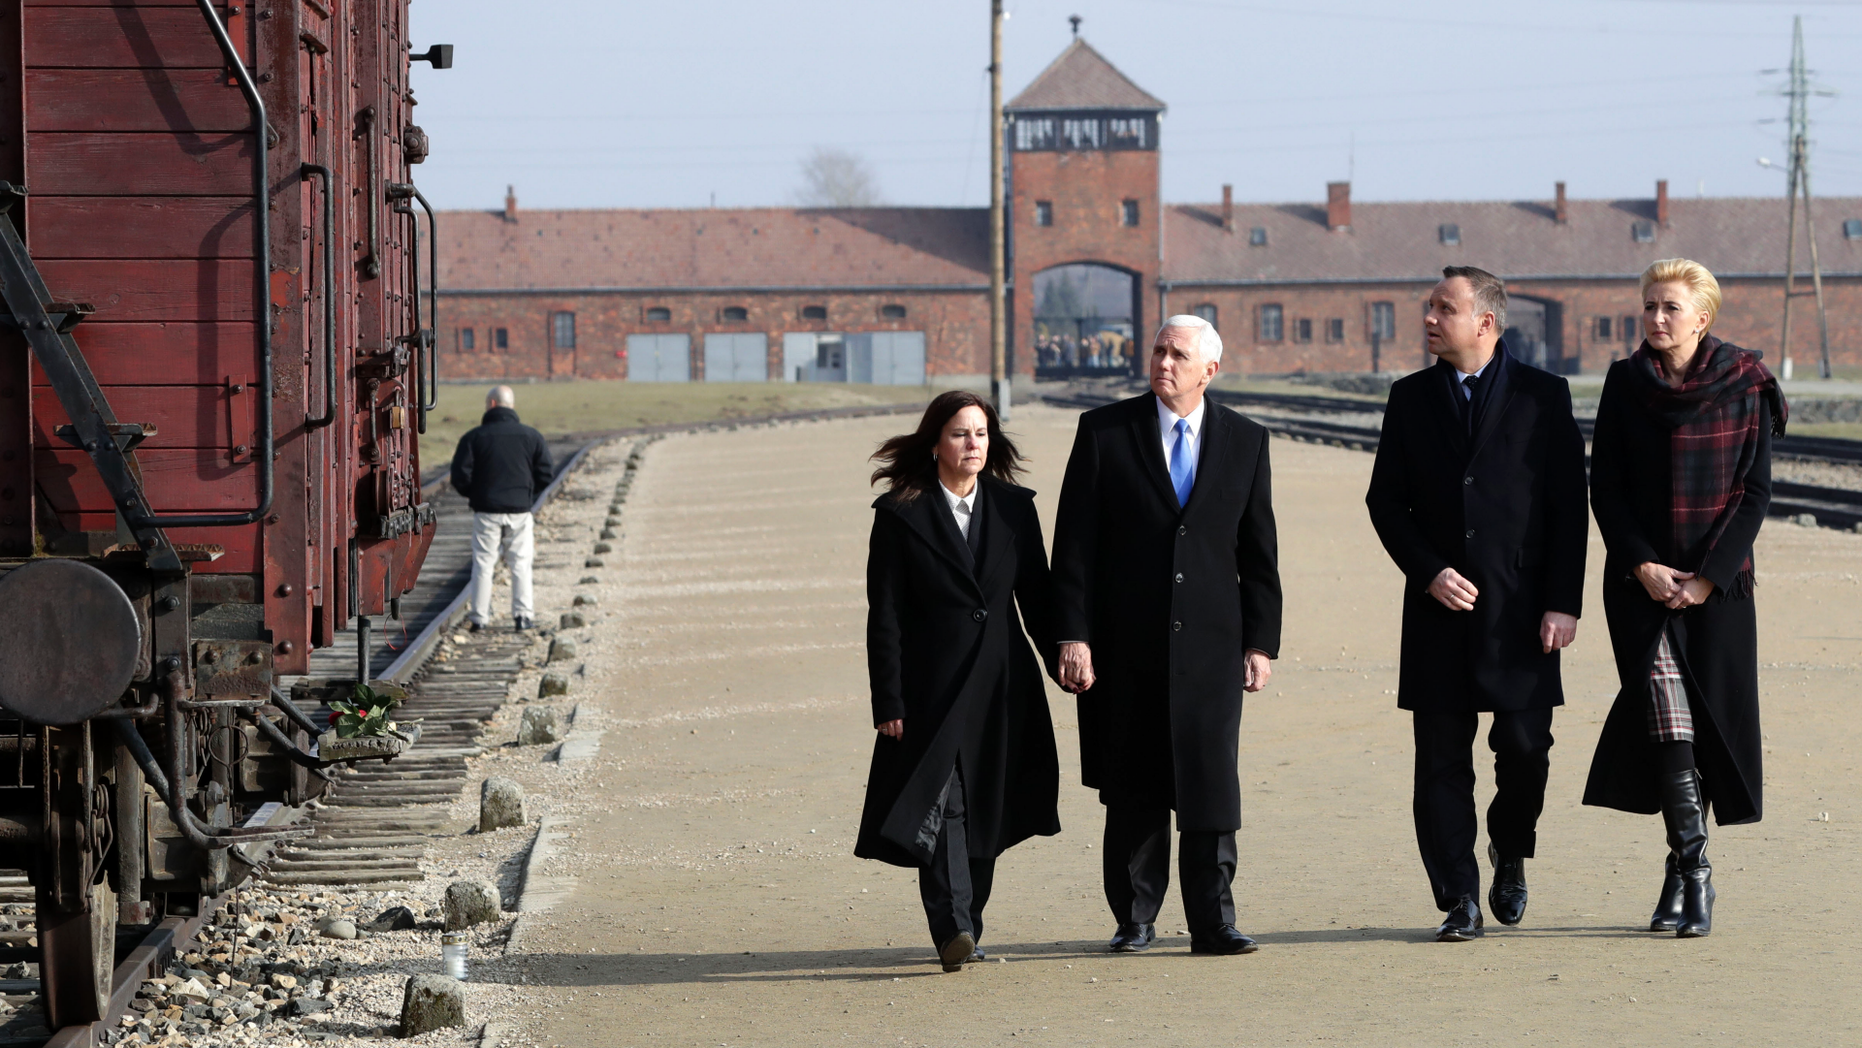 United States Vice President Mike Pence and his wife Karen Pence, left, walk with Poland's President Andrzej Duda and his wife Agata Kornhauser-Duda, right, during their visit at the Nazi concentration camp Auschwitz-Birkenau in Oswiecim, Poland, Friday, Feb. 15, 2019. (AP Photo/Michael Sohn)